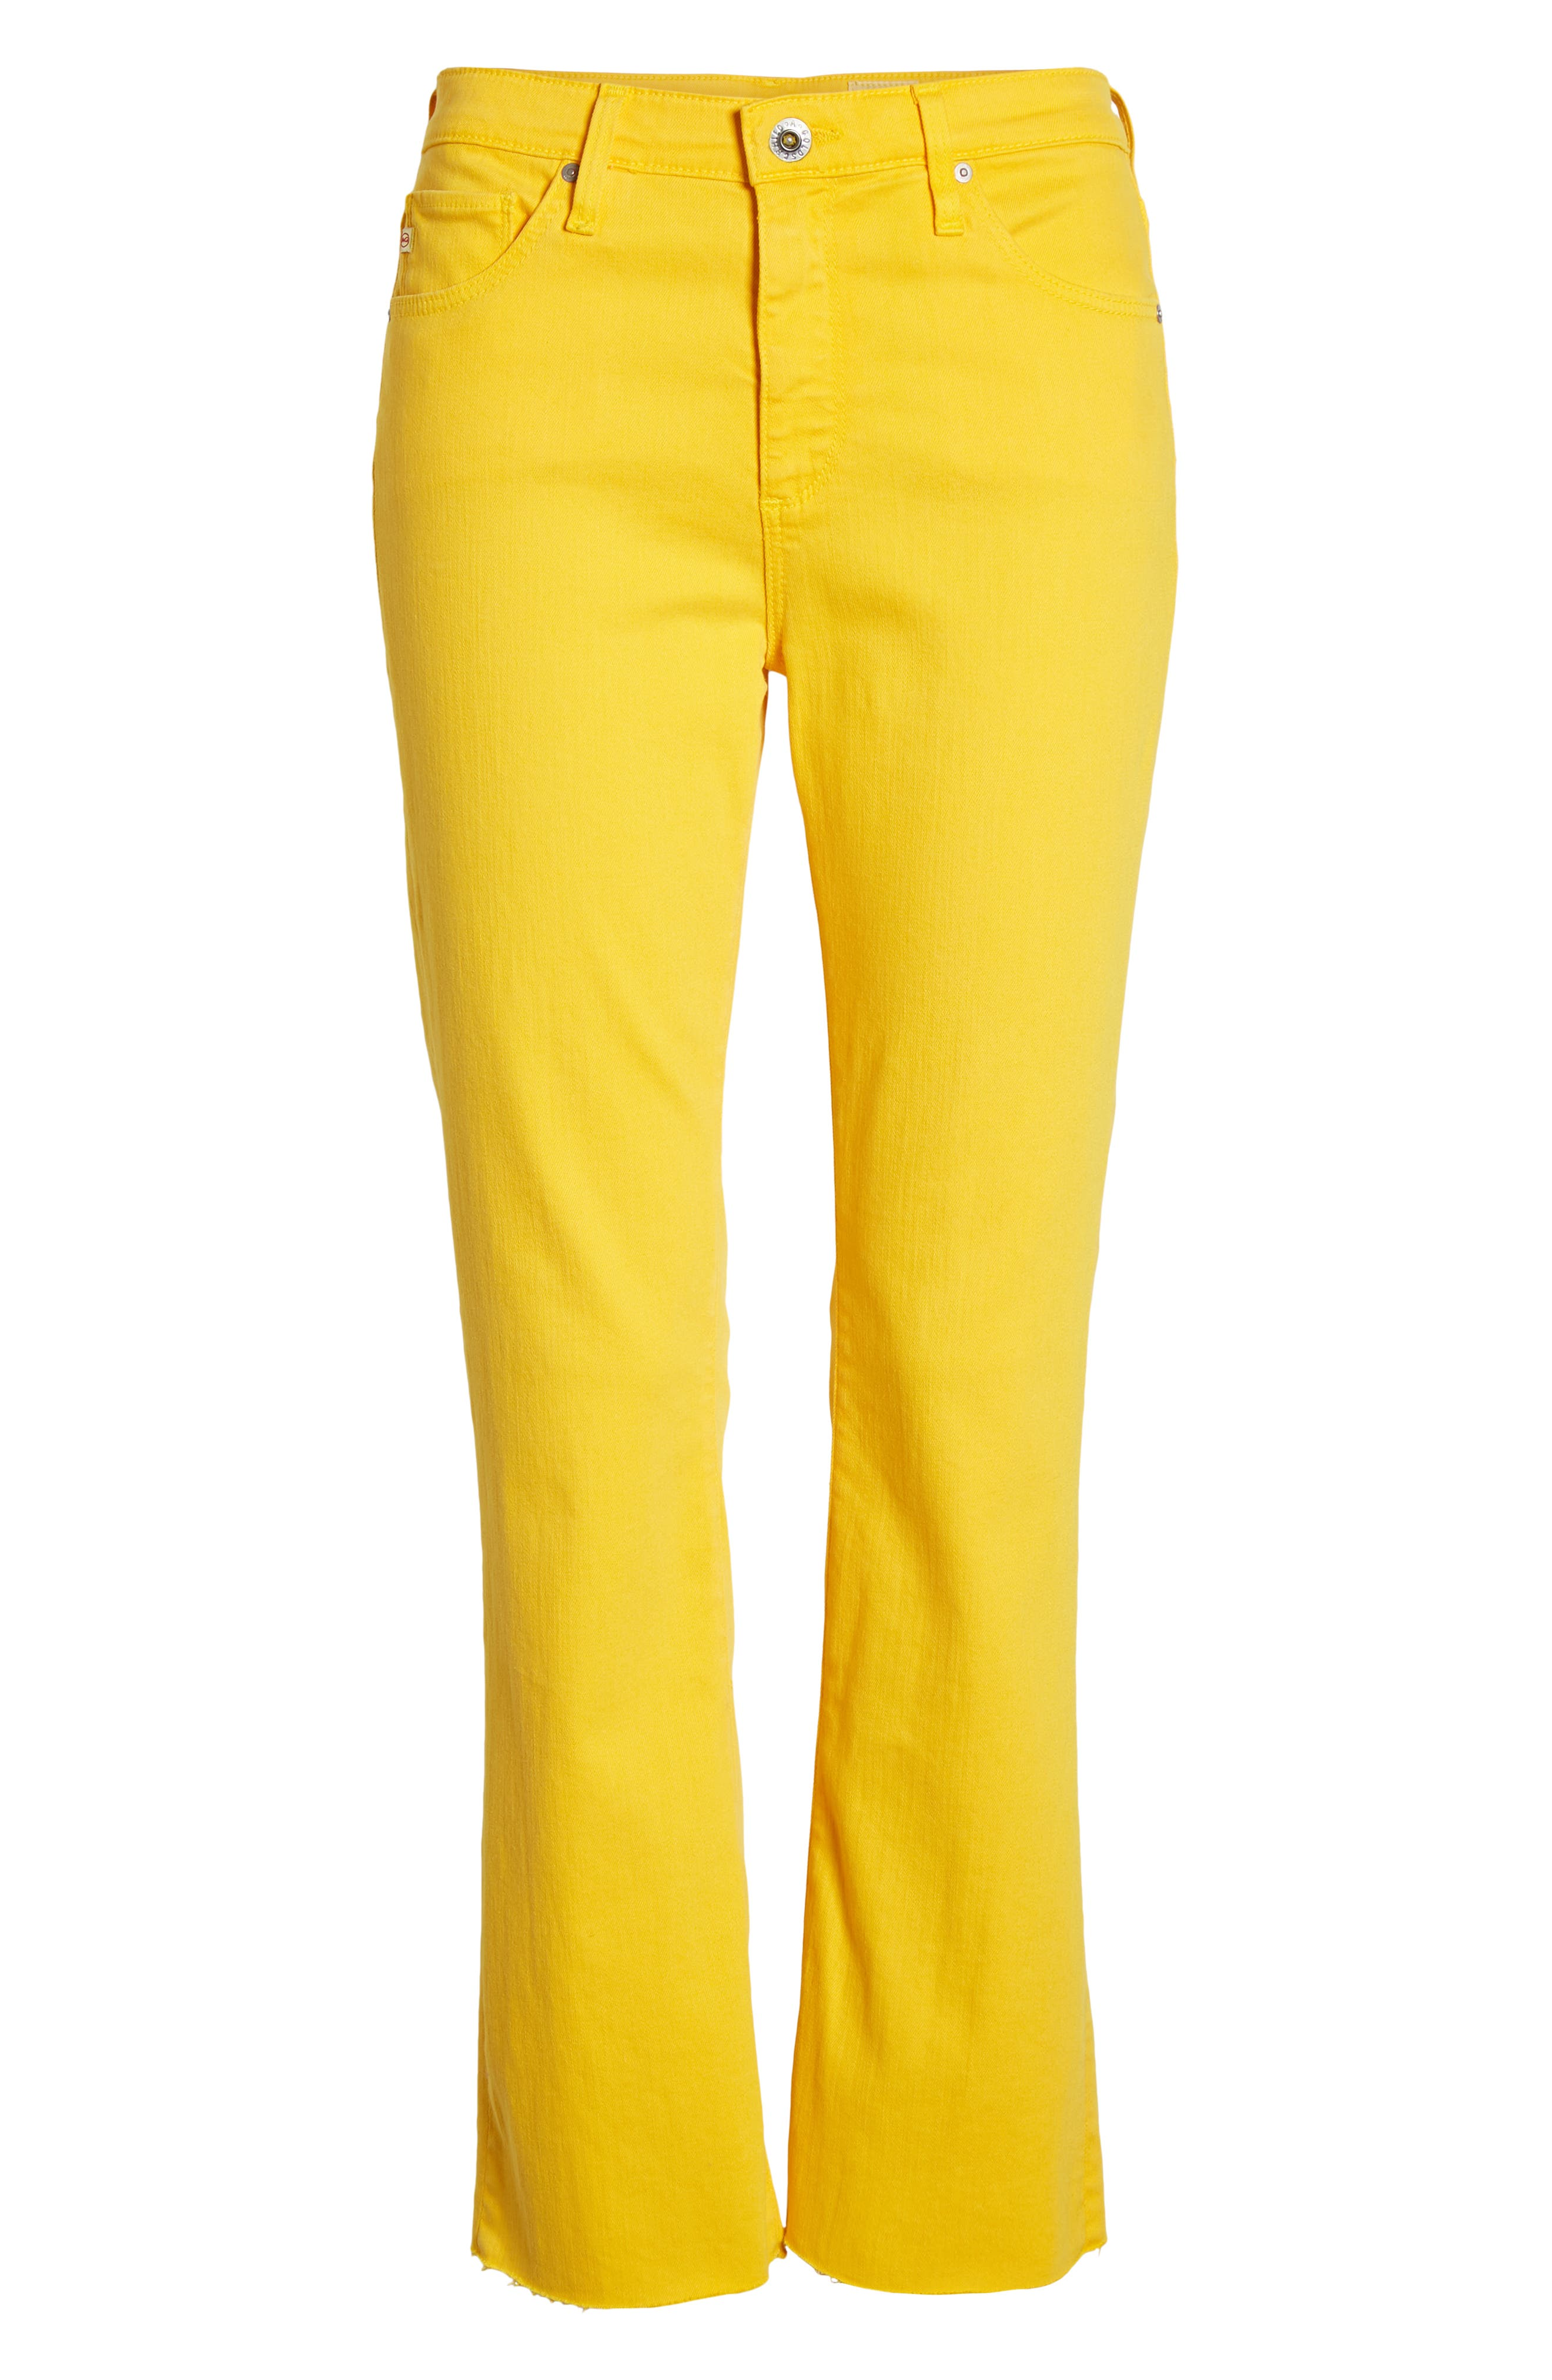 AG, Jodi High Waist Crop Jeans, Alternate thumbnail 7, color, GOLDEN OCHRE